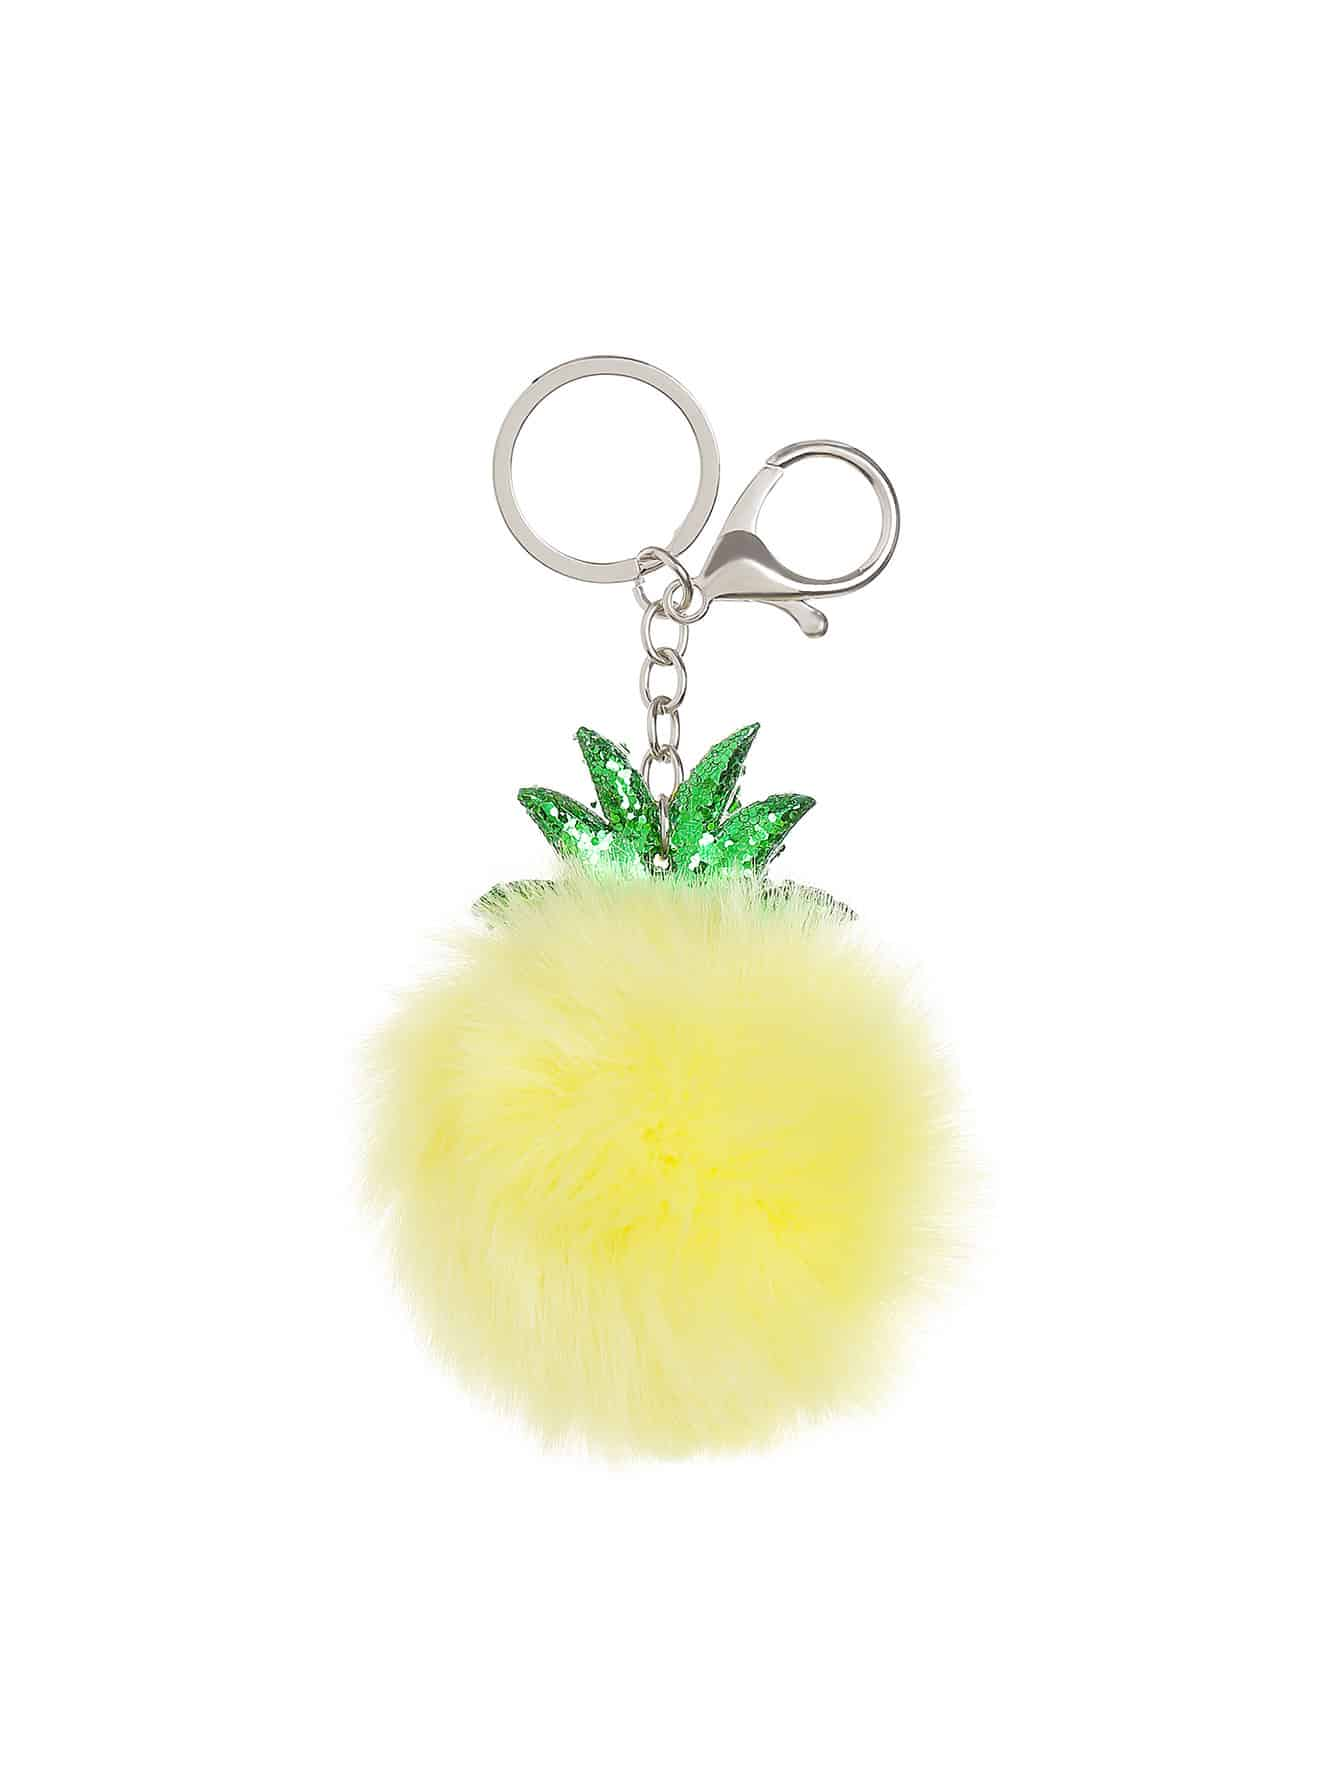 Pineapple Shaped Keychain With Pom Pom массажный стол us medica master